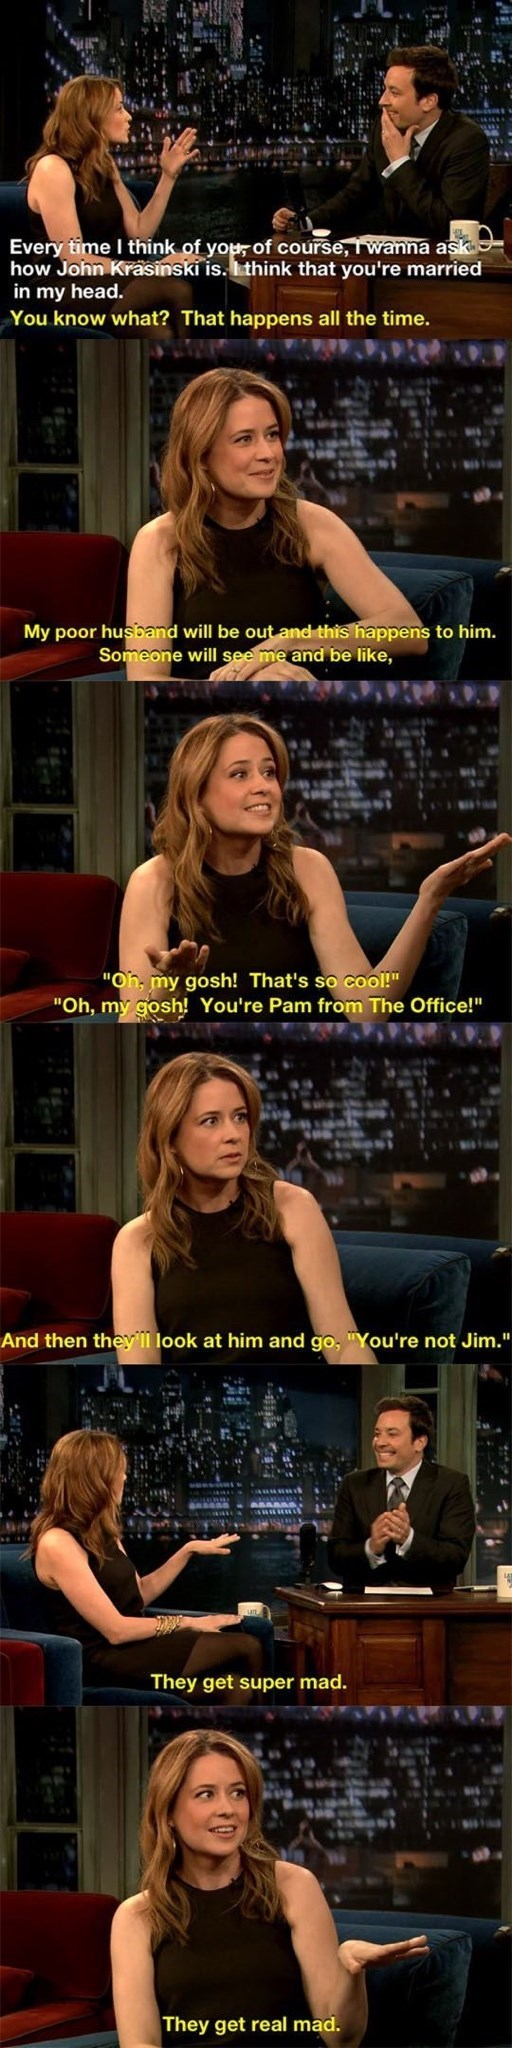 pam interview married jim the office memes